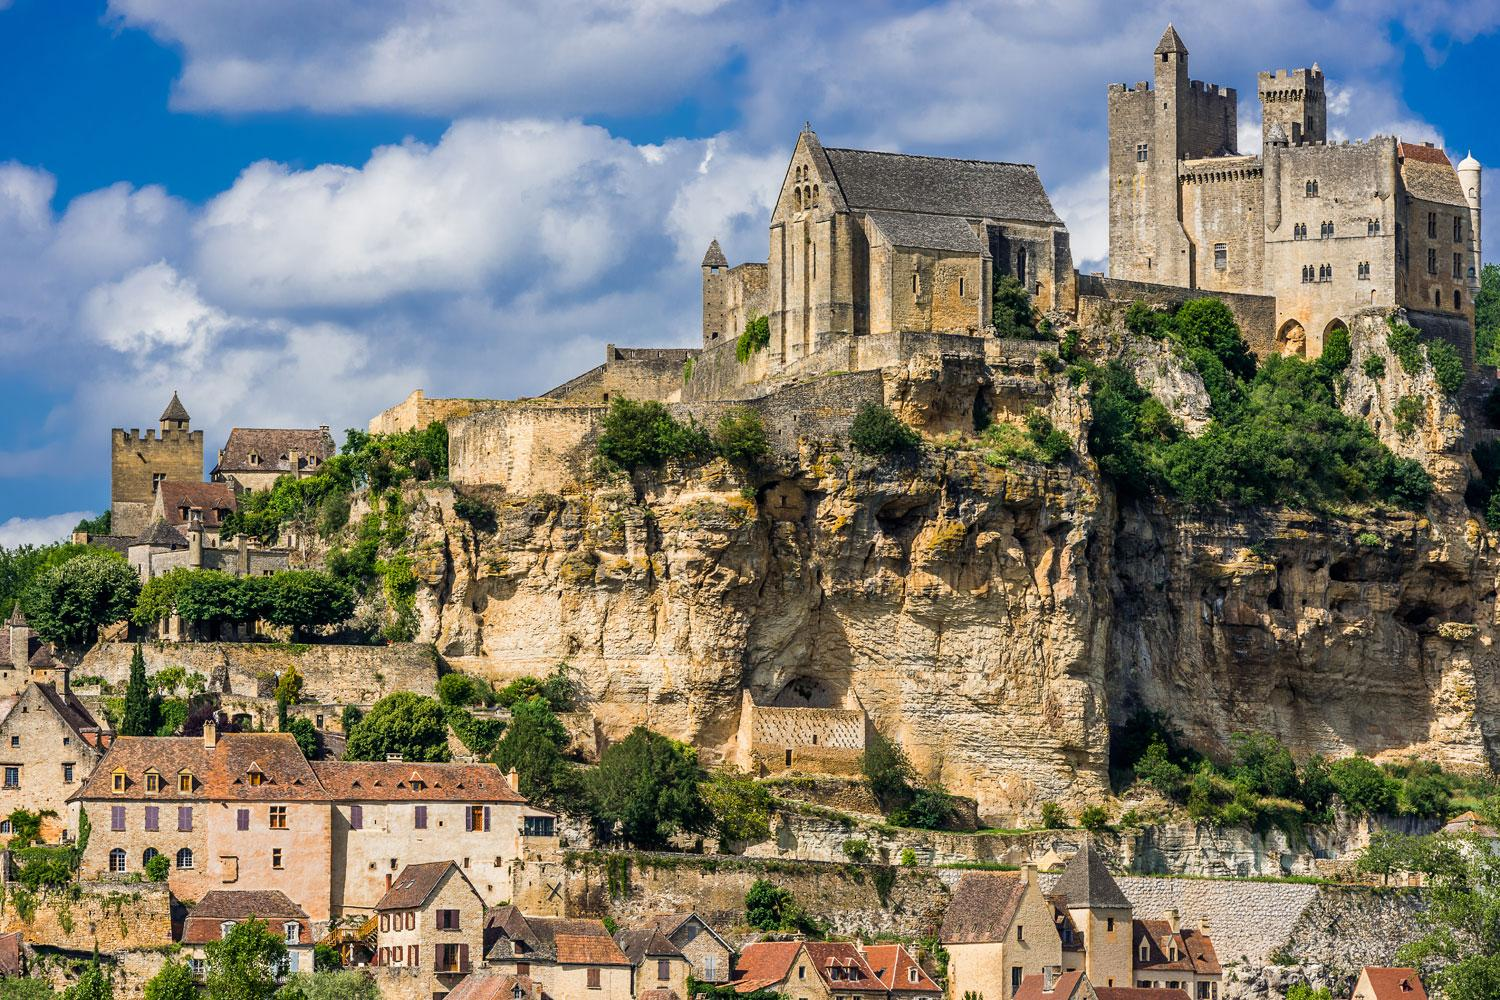 The towering stronghold of Beynac